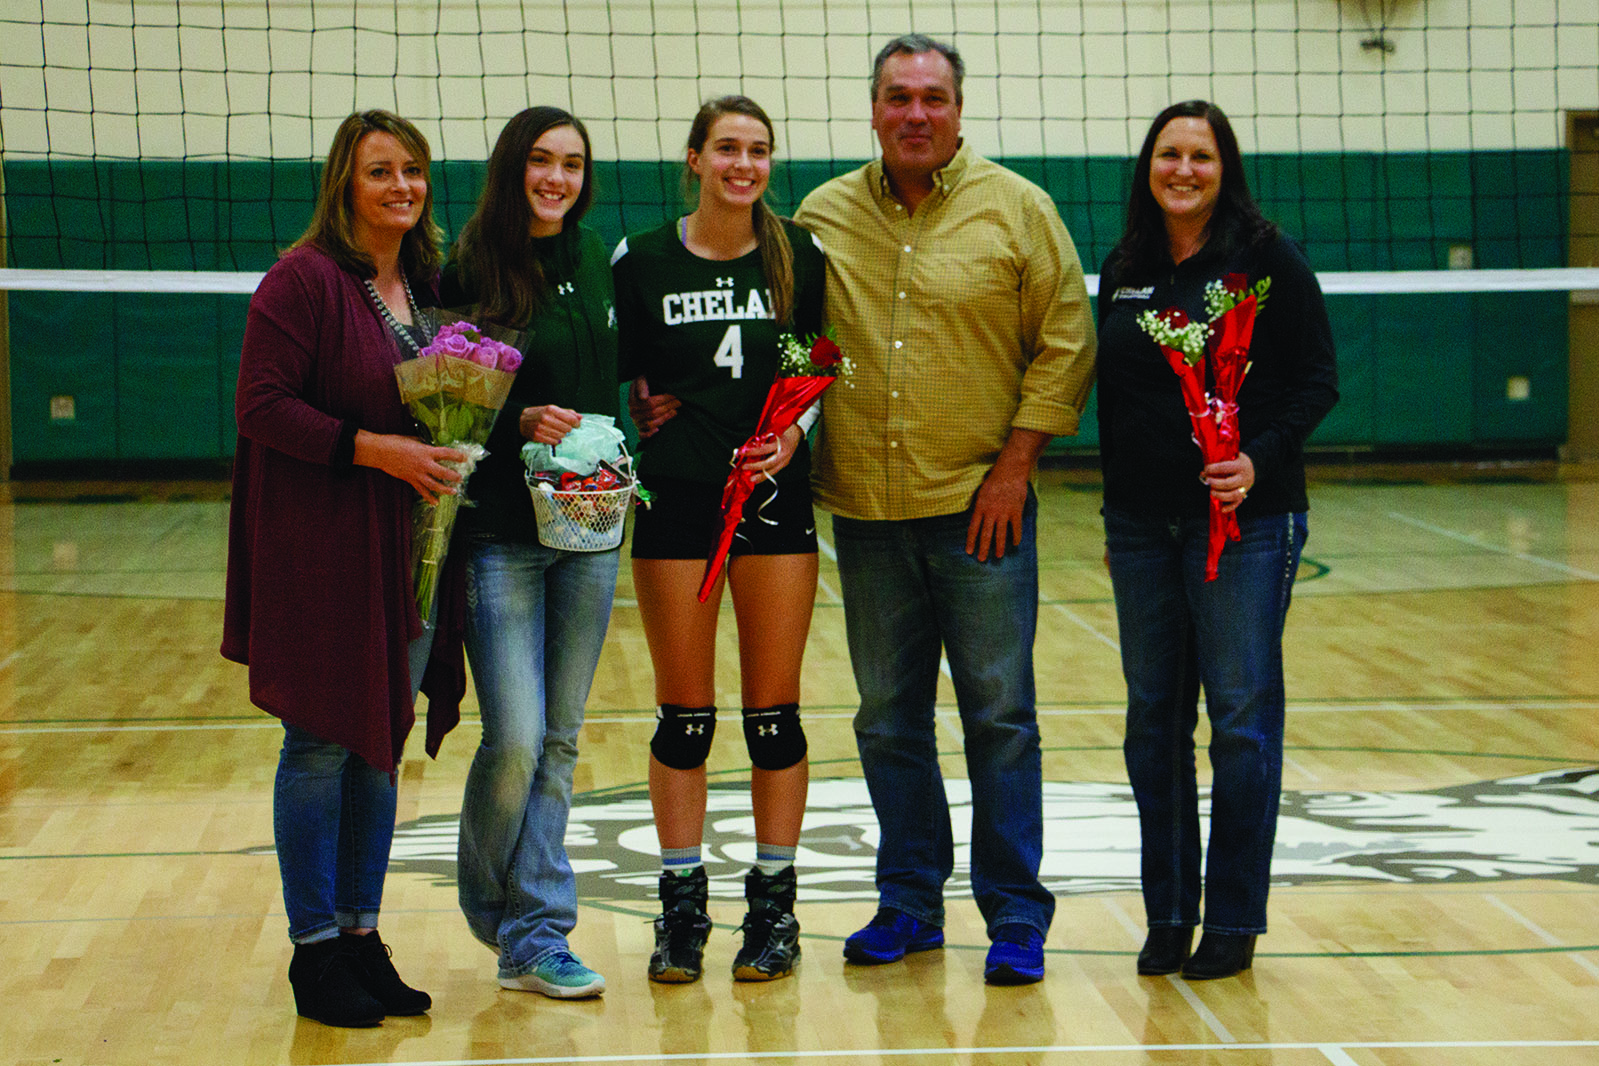 Sydney Hawkins stands with sister, parents, and Head Coach Jenifer Rainville.